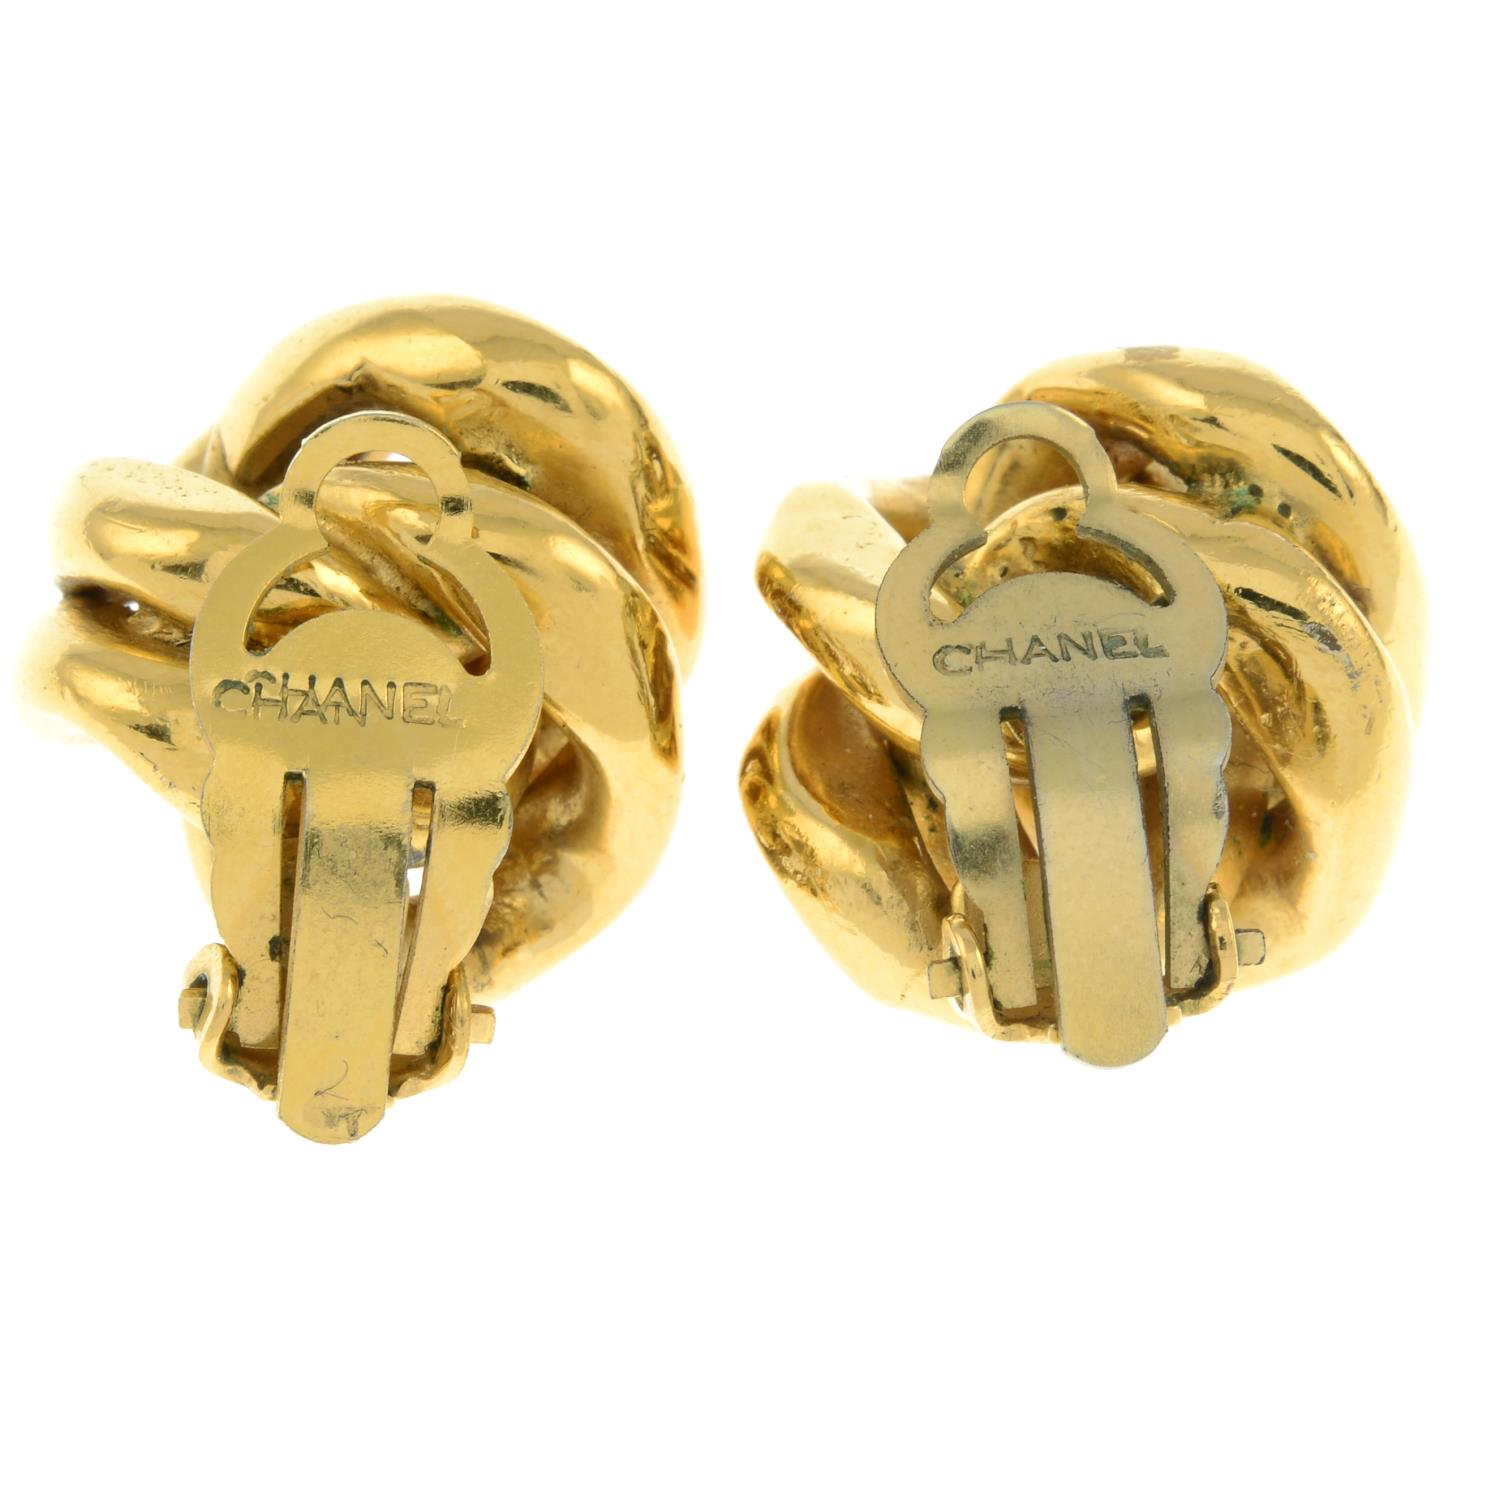 A pair of clip-on earrings, by Chanel.Signed Chanel. - Image 2 of 2